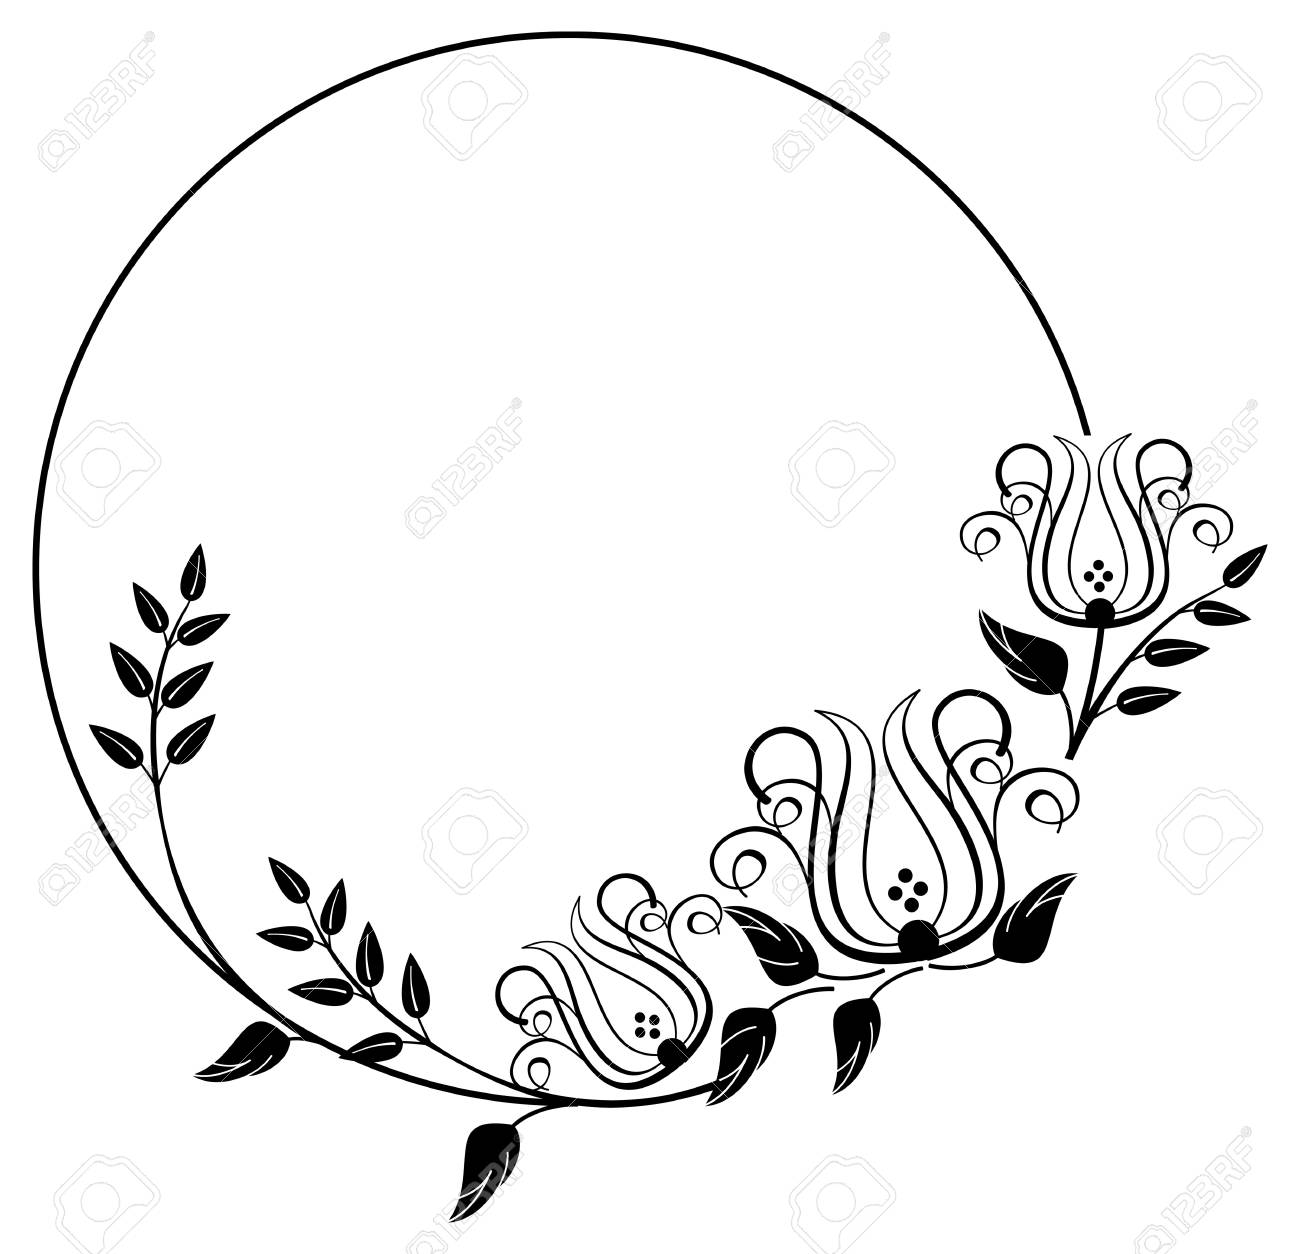 black and white round frame with floral silhouettes copy space rh 123rf com floral clip art borders floral clip art free download